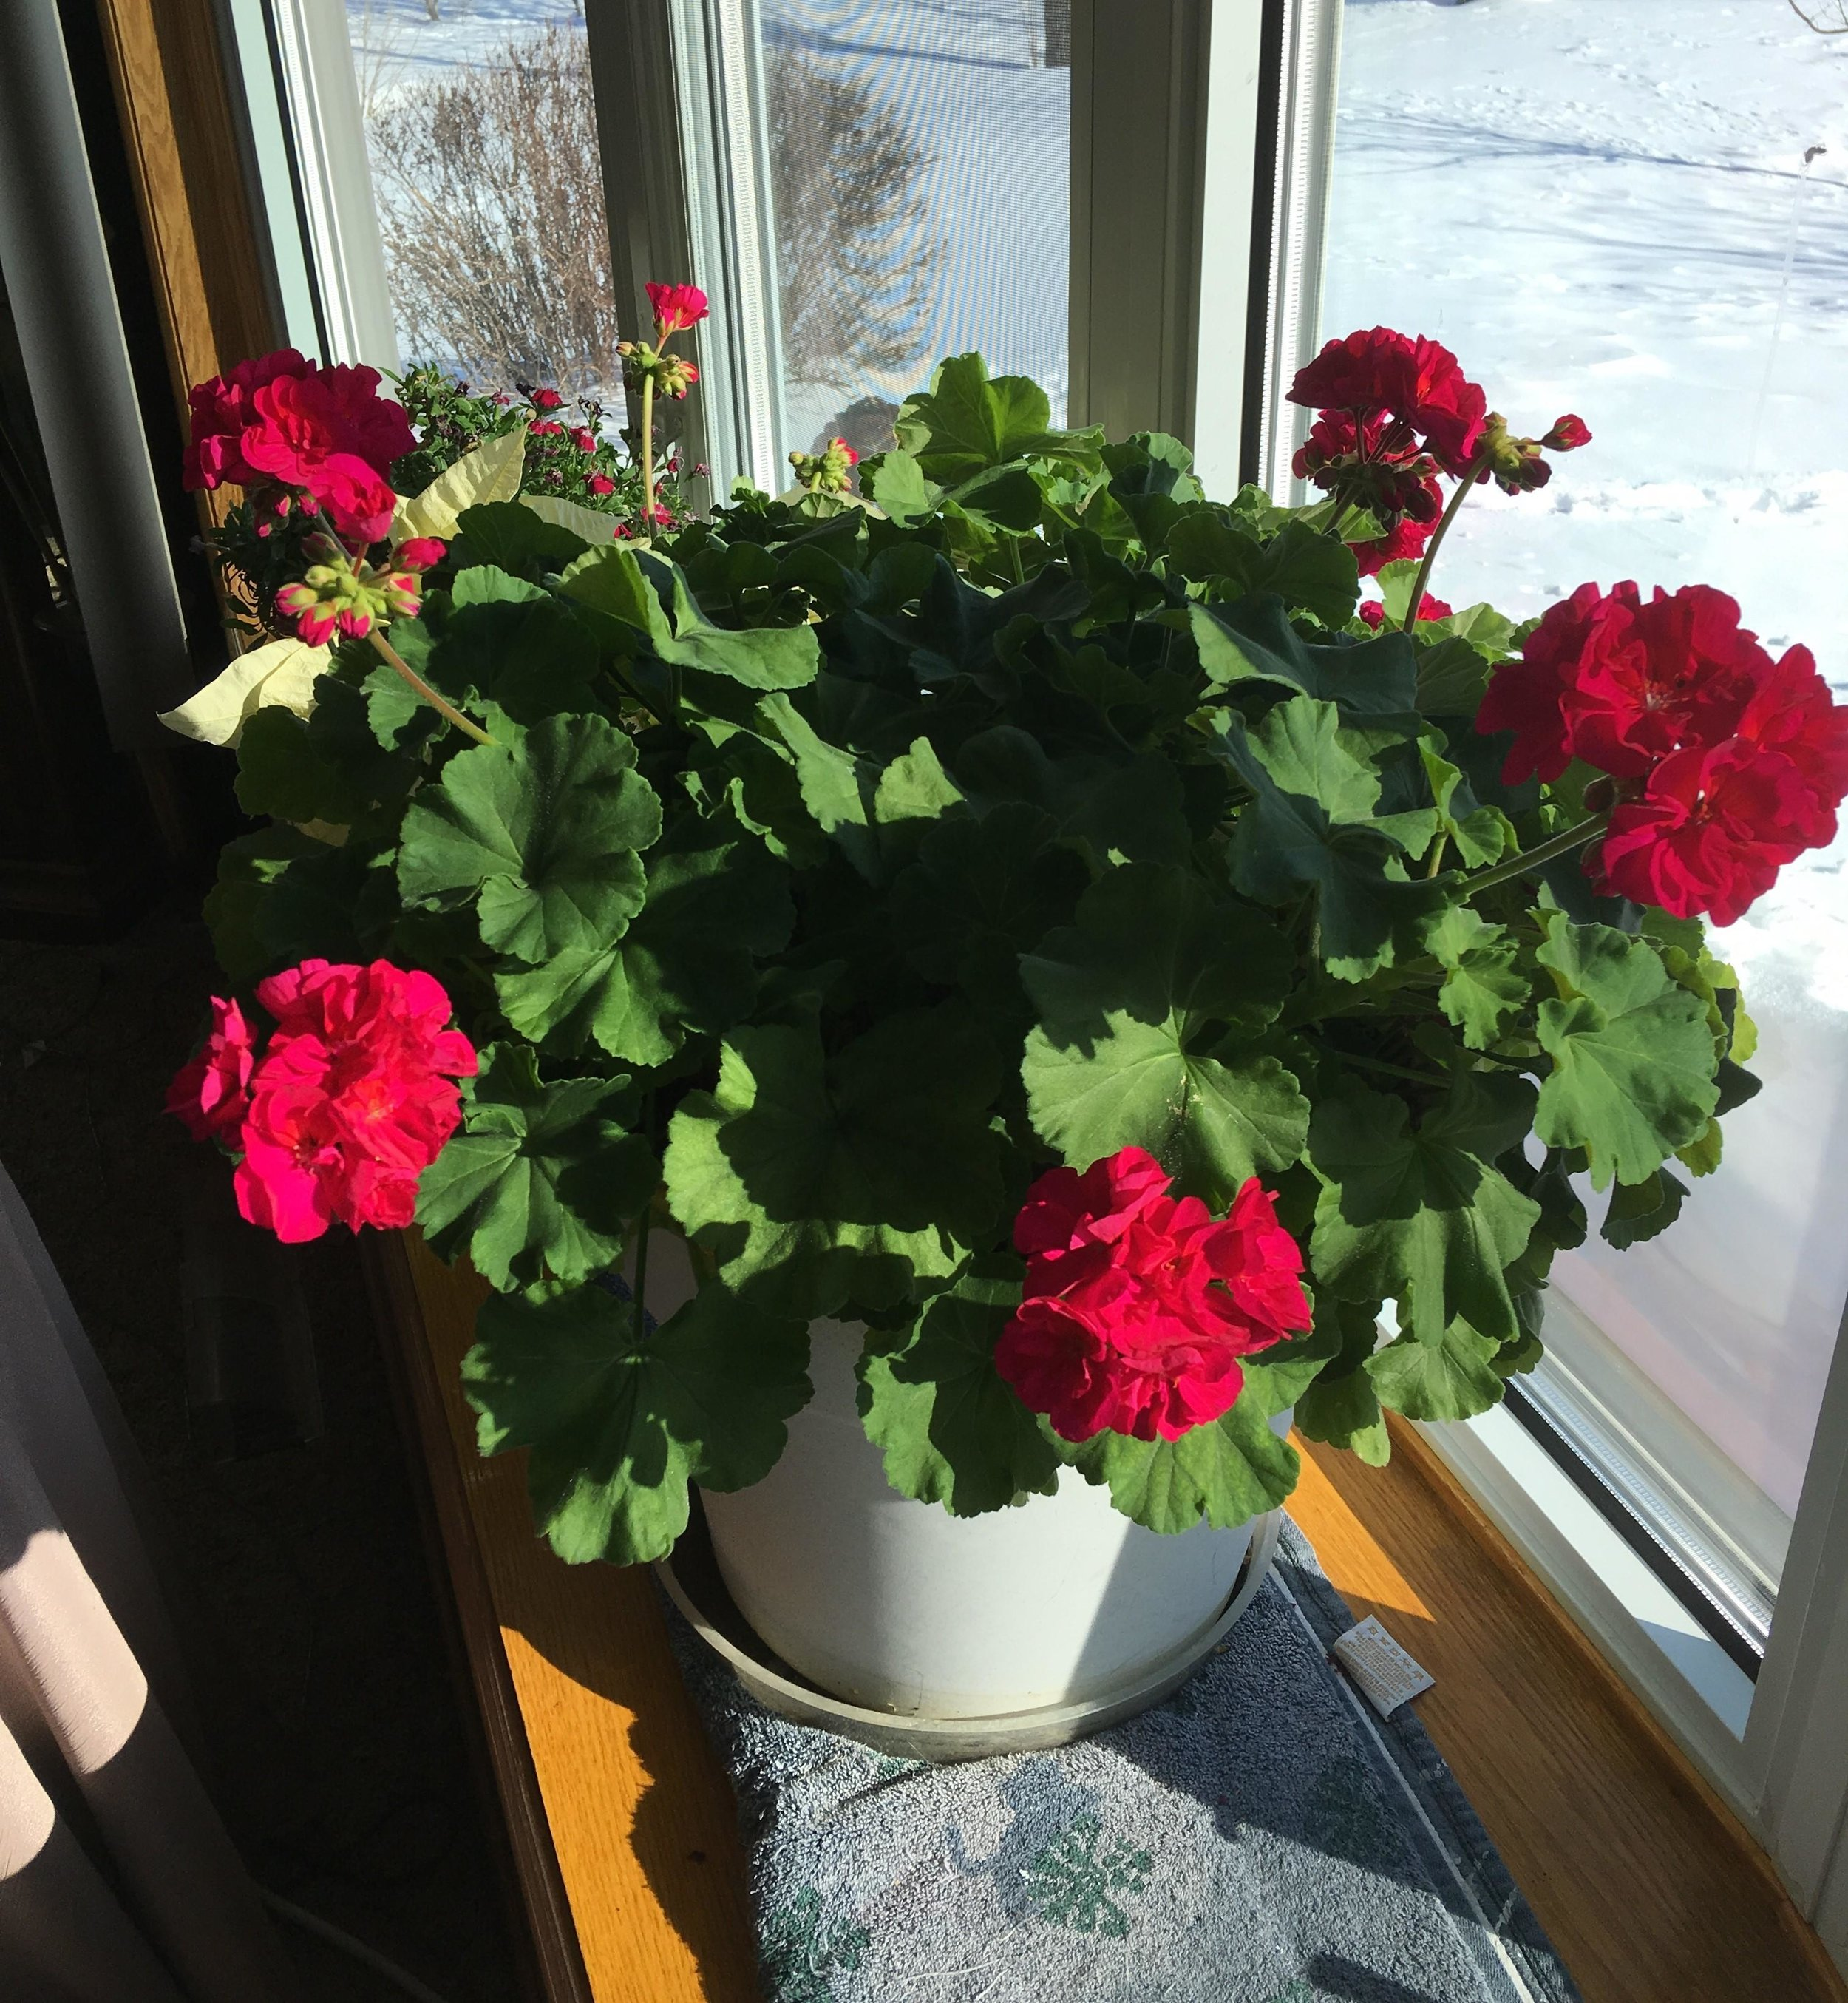 The Detroit Lakes Lions Club will be selling 12-inch pots of geraniums to raise funds for their annual mission trips to Mexico, where they help thousands of Mexican residents to be able to see better. (Forum News Service photo)